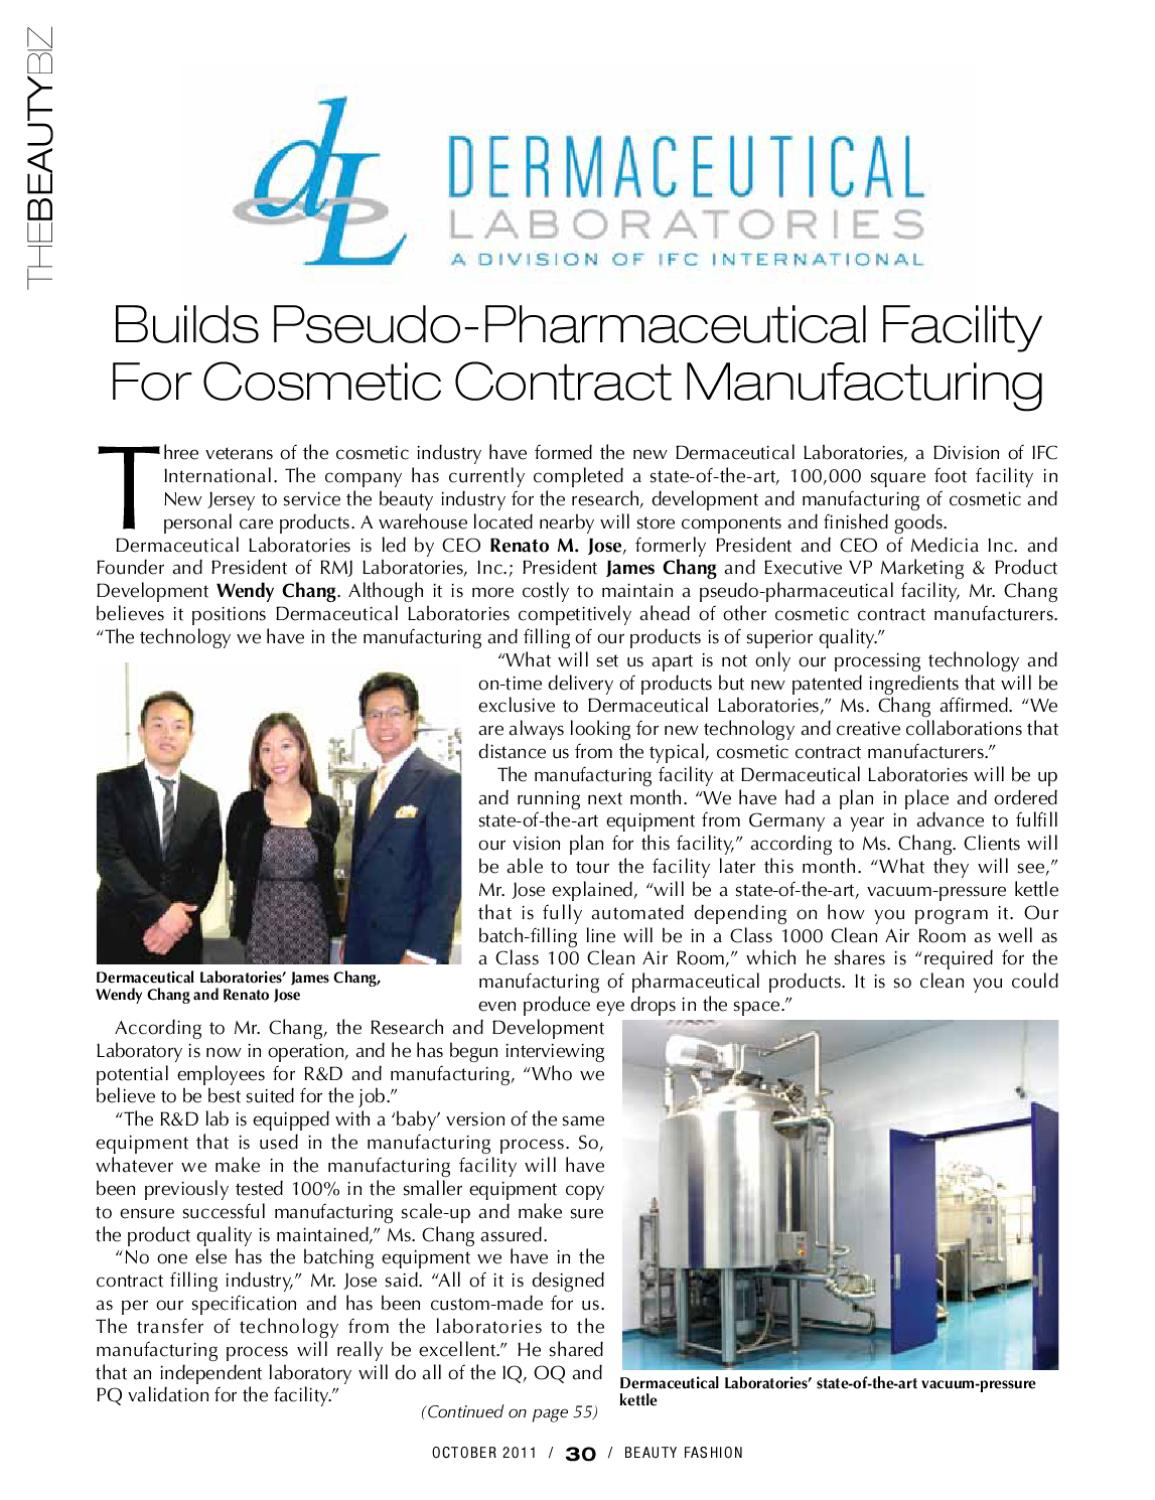 Dermaceutical labs